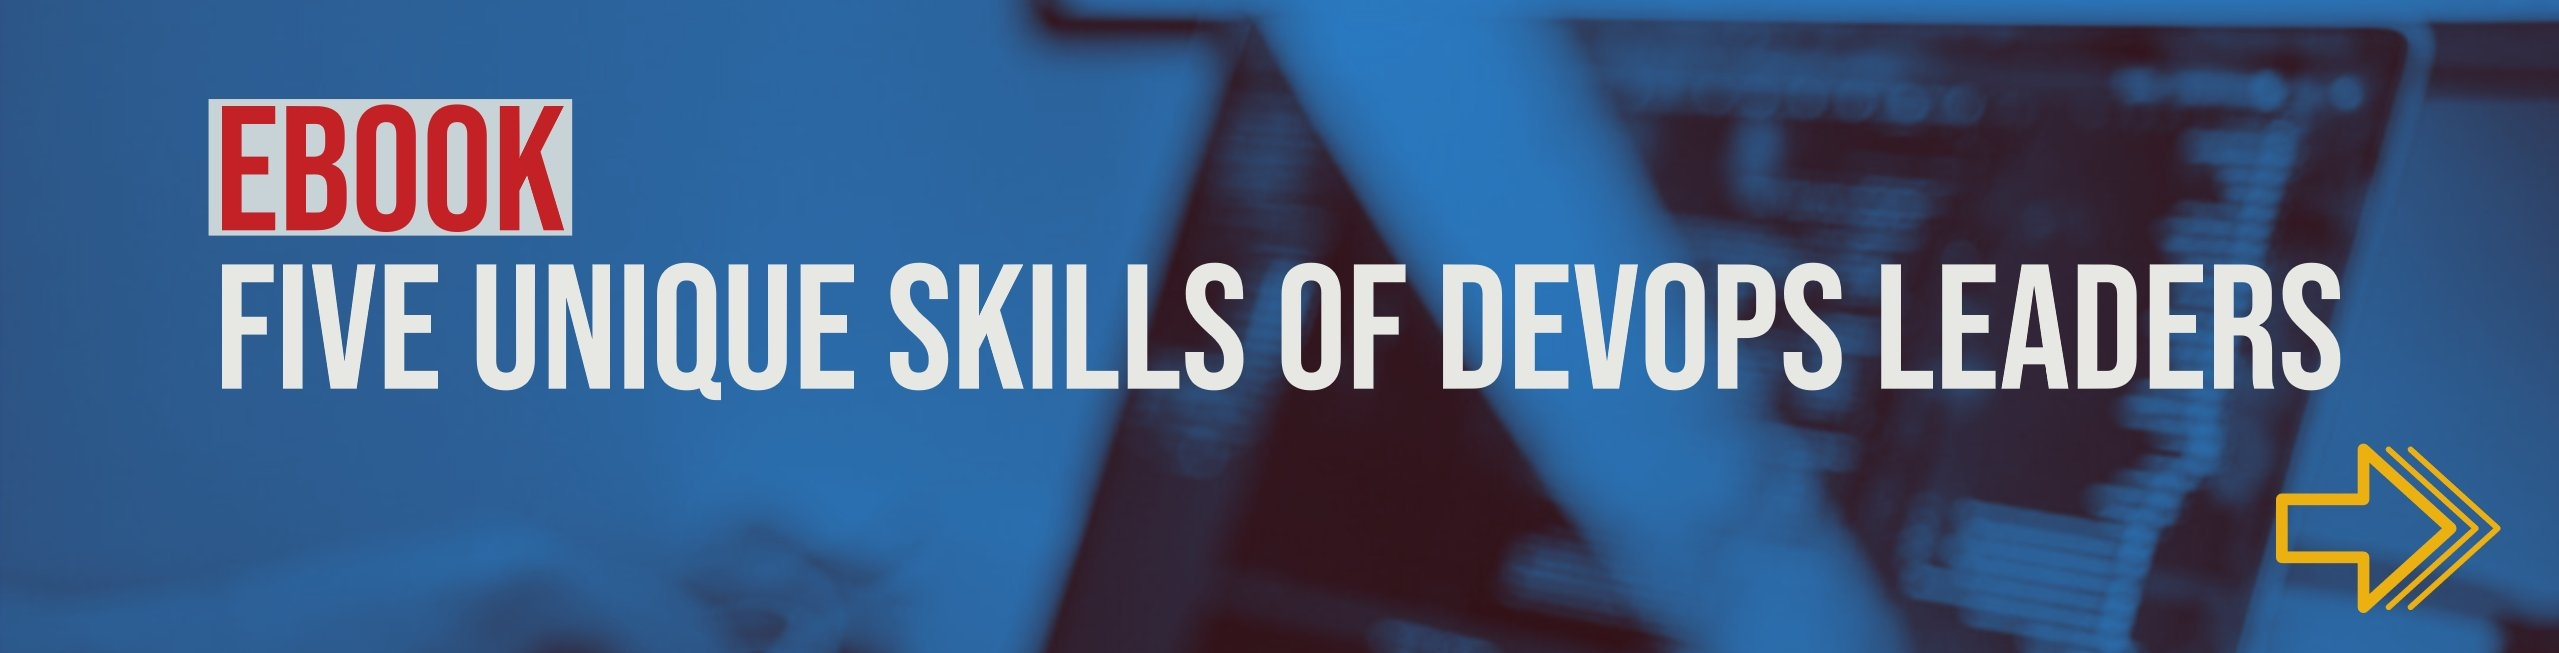 Download DevOps Whitepaper